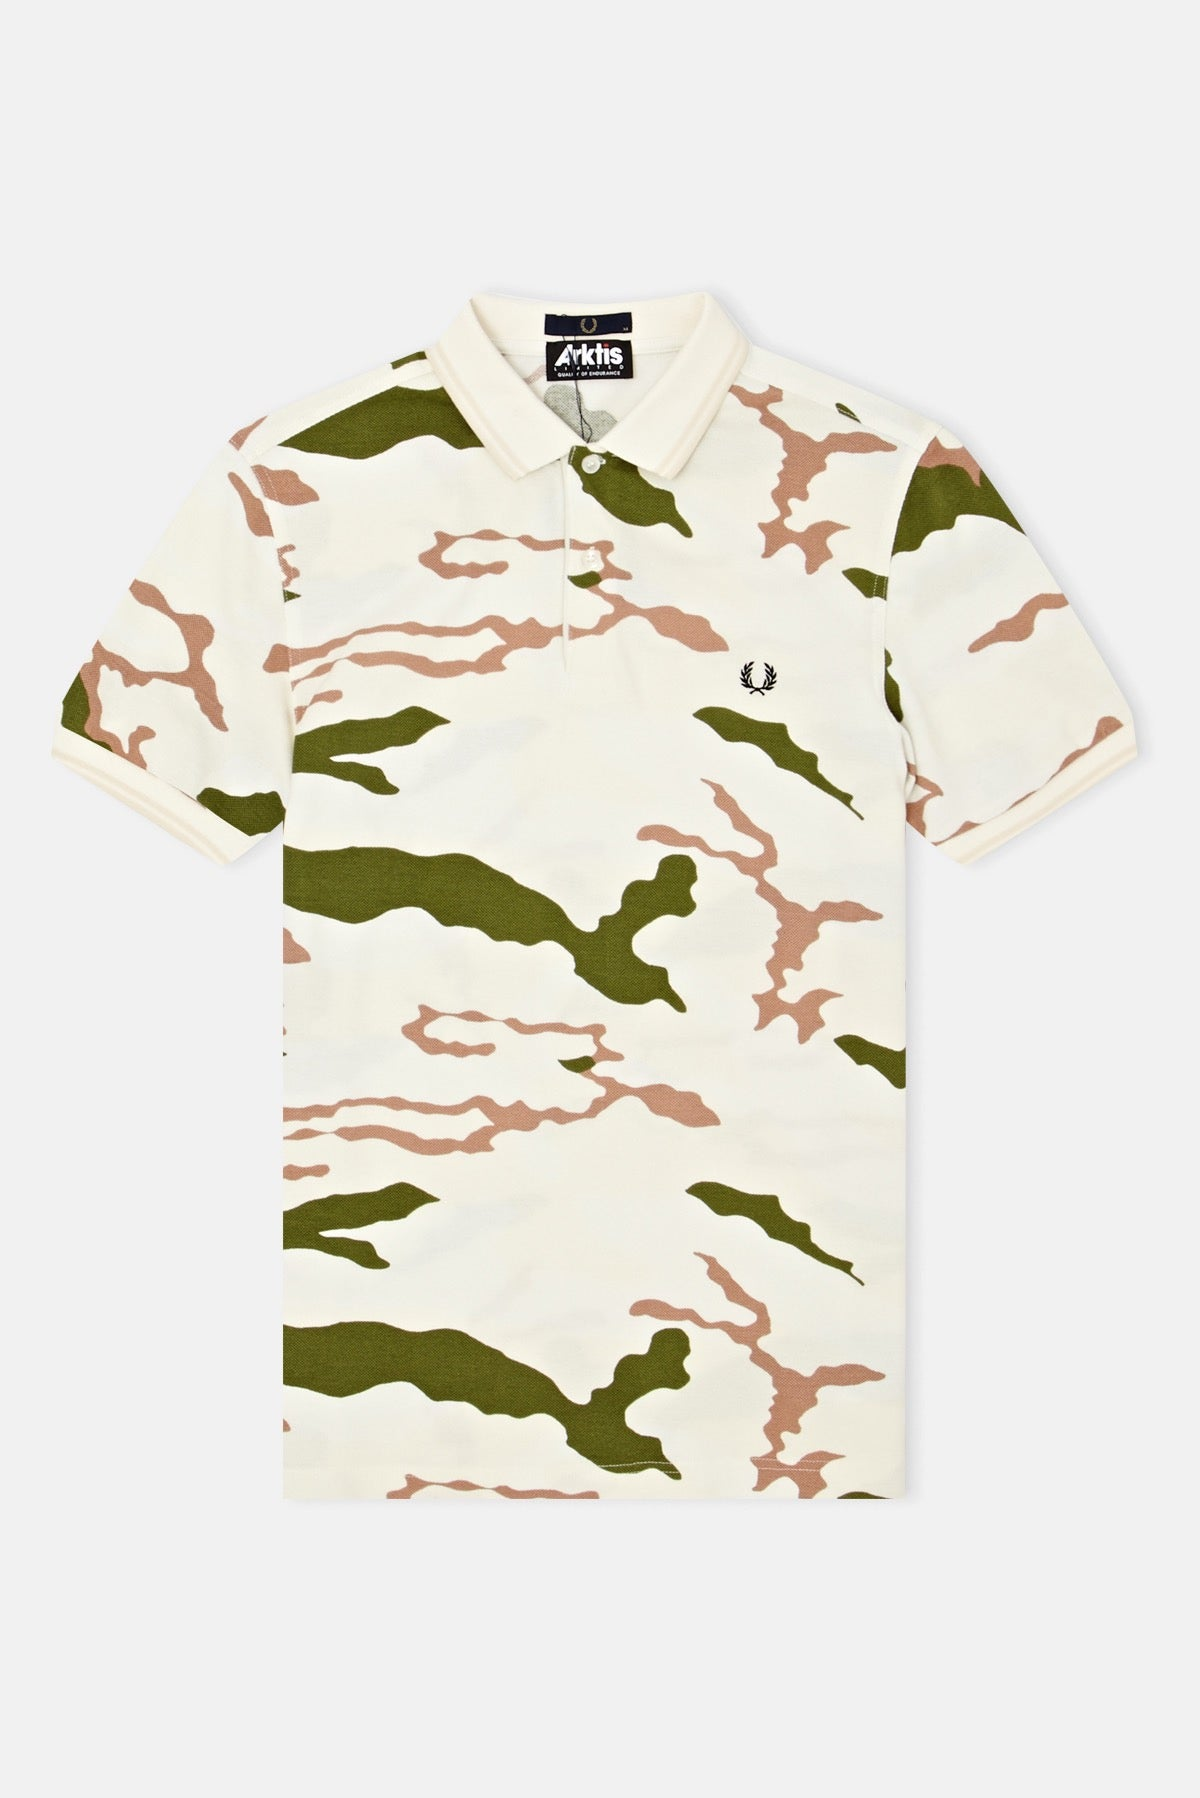 f7a625c7c Fred Perry Collections x Ark Air Camouflage Pique Polo available ...